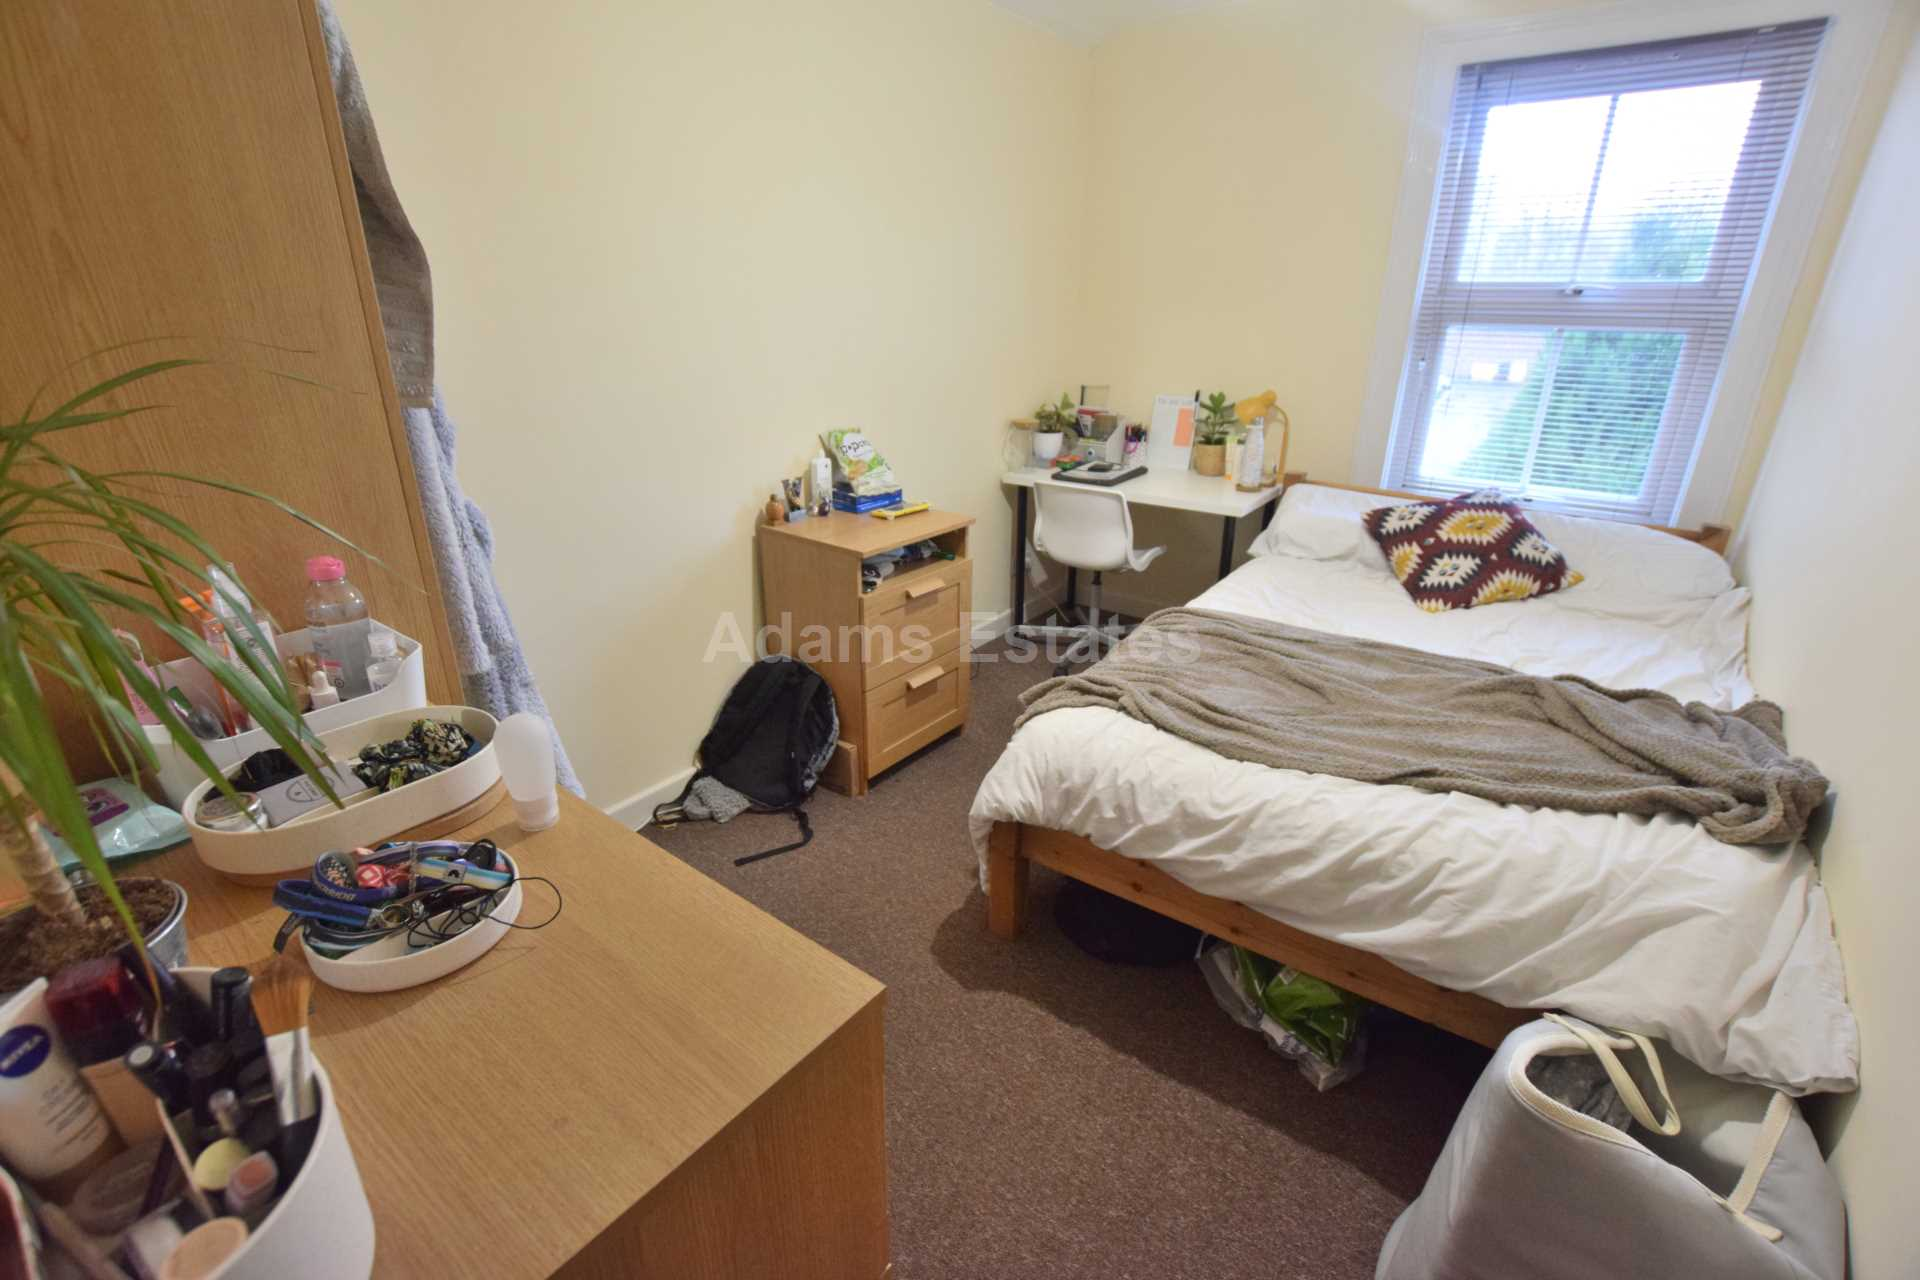 Orts Road, Reading, Image 7